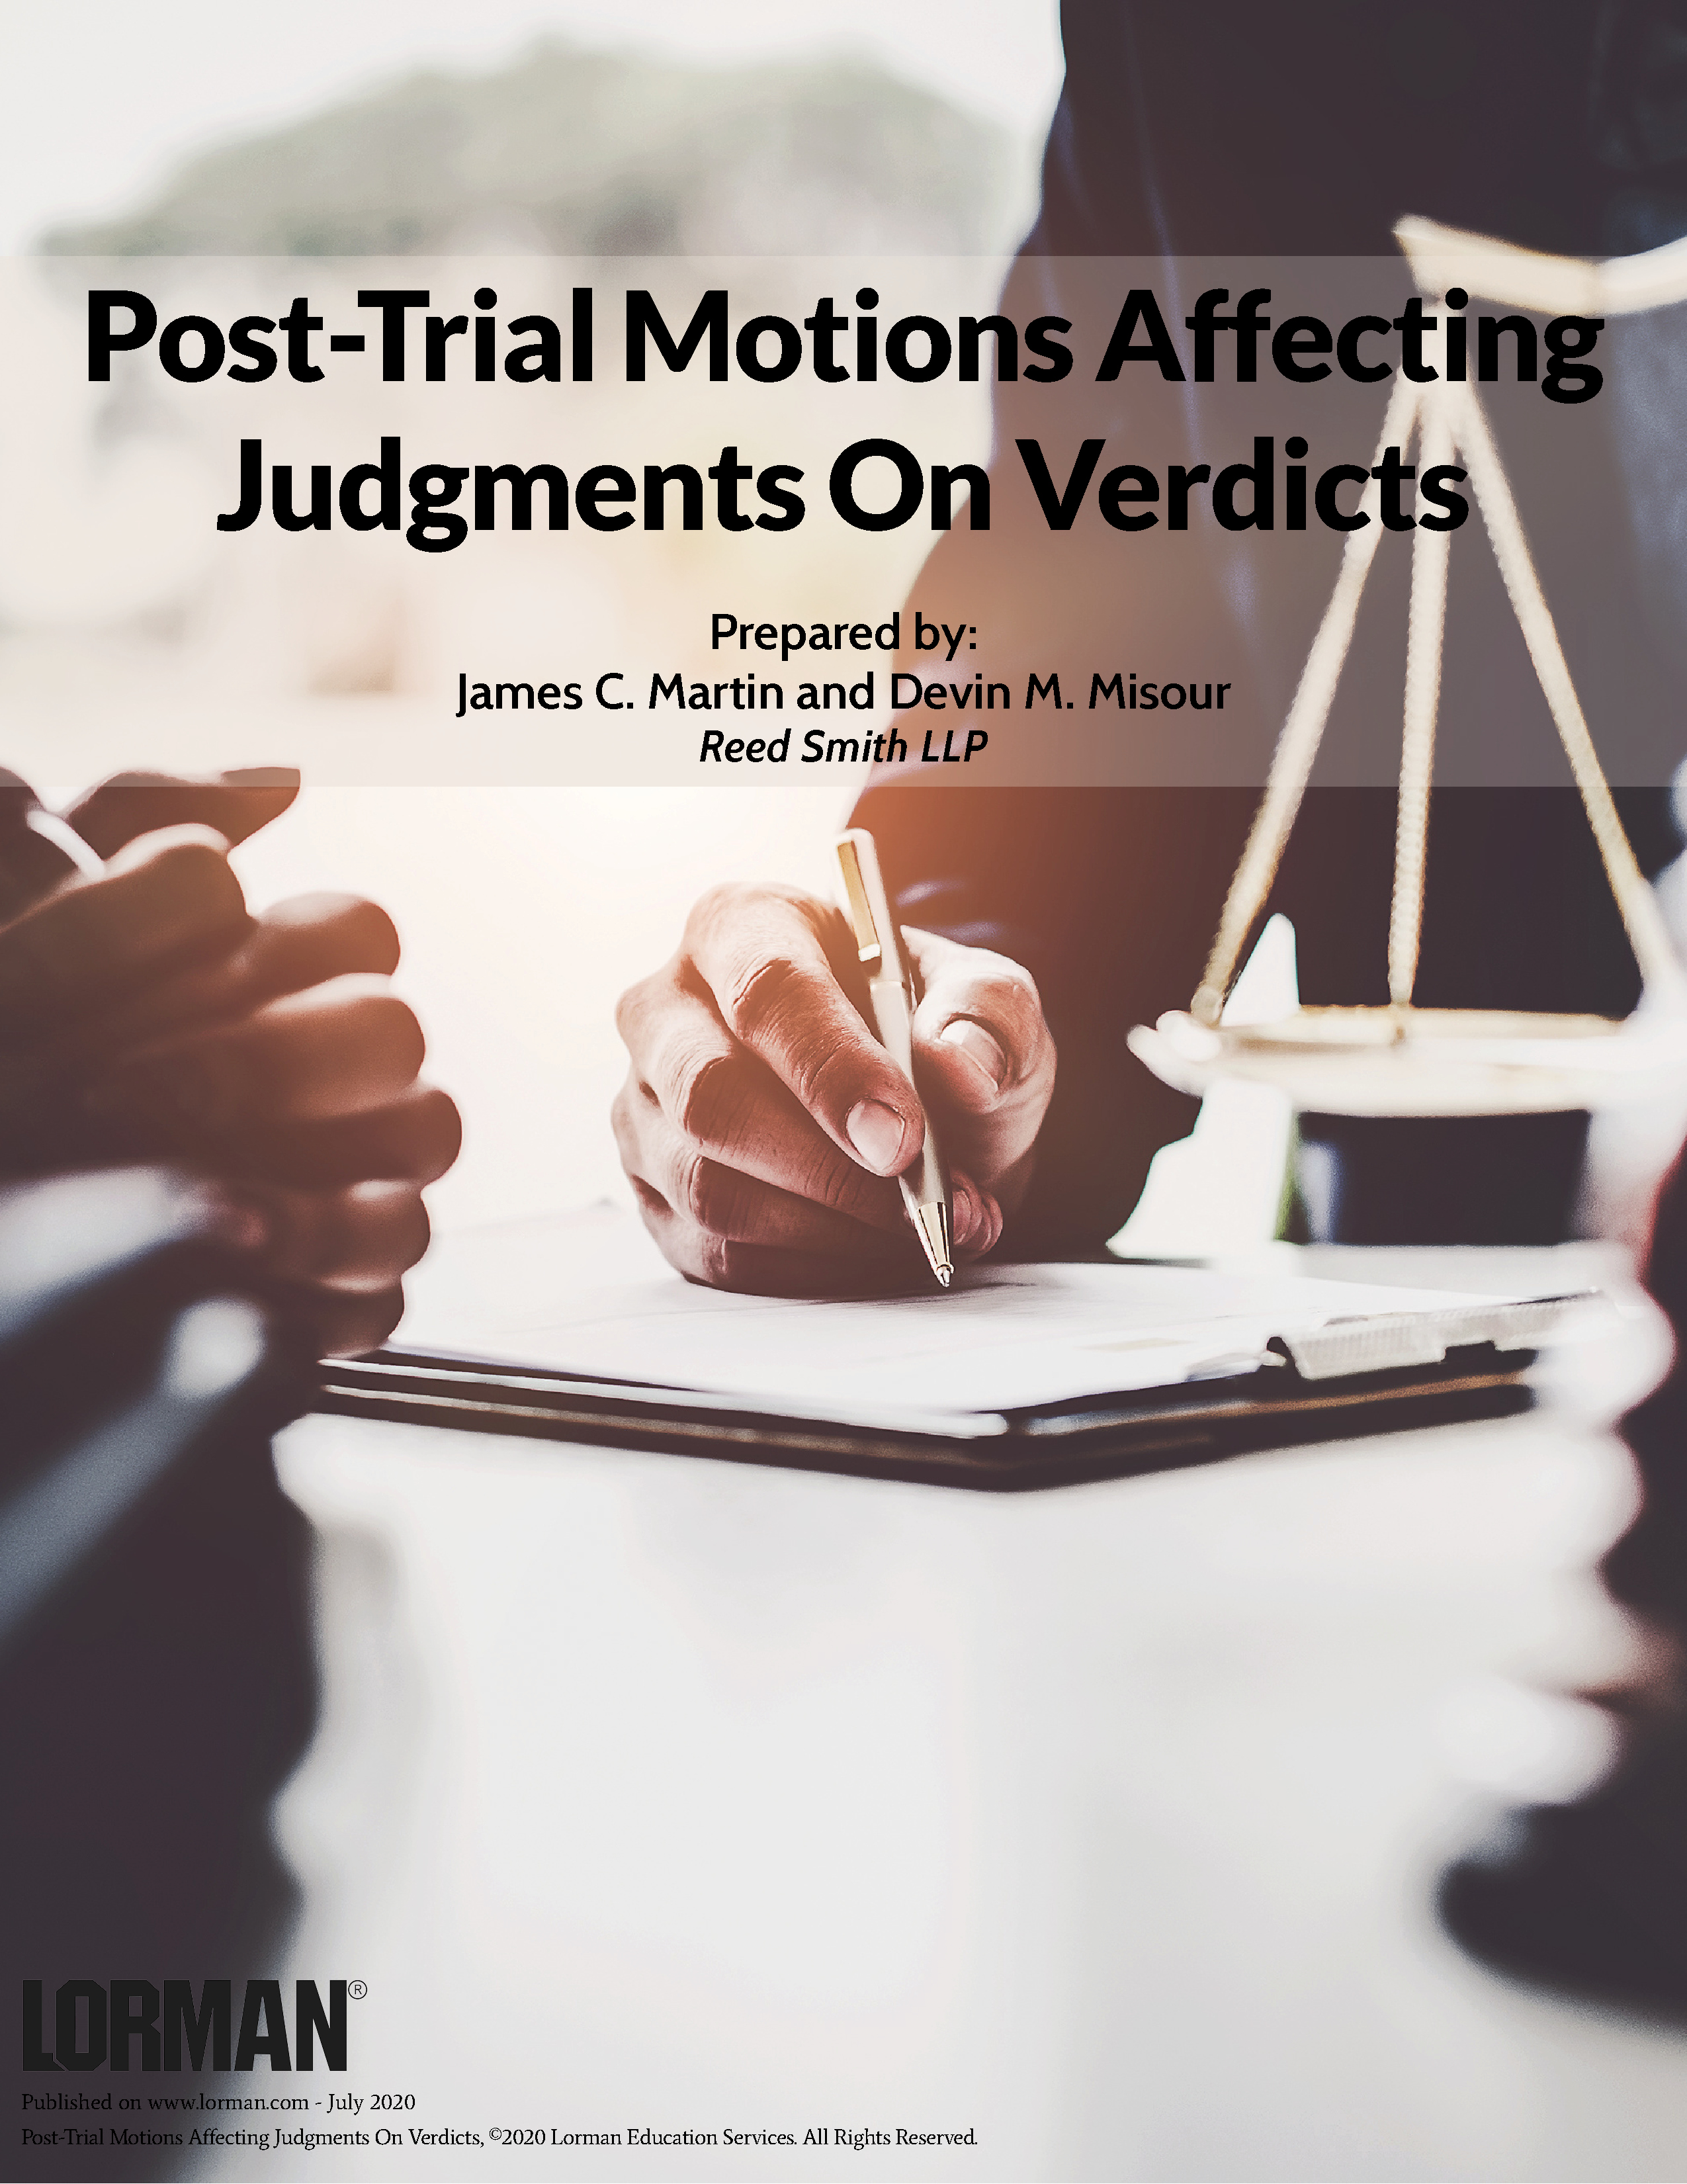 Post-Trial Motions Affecting Judgments on Verdicts